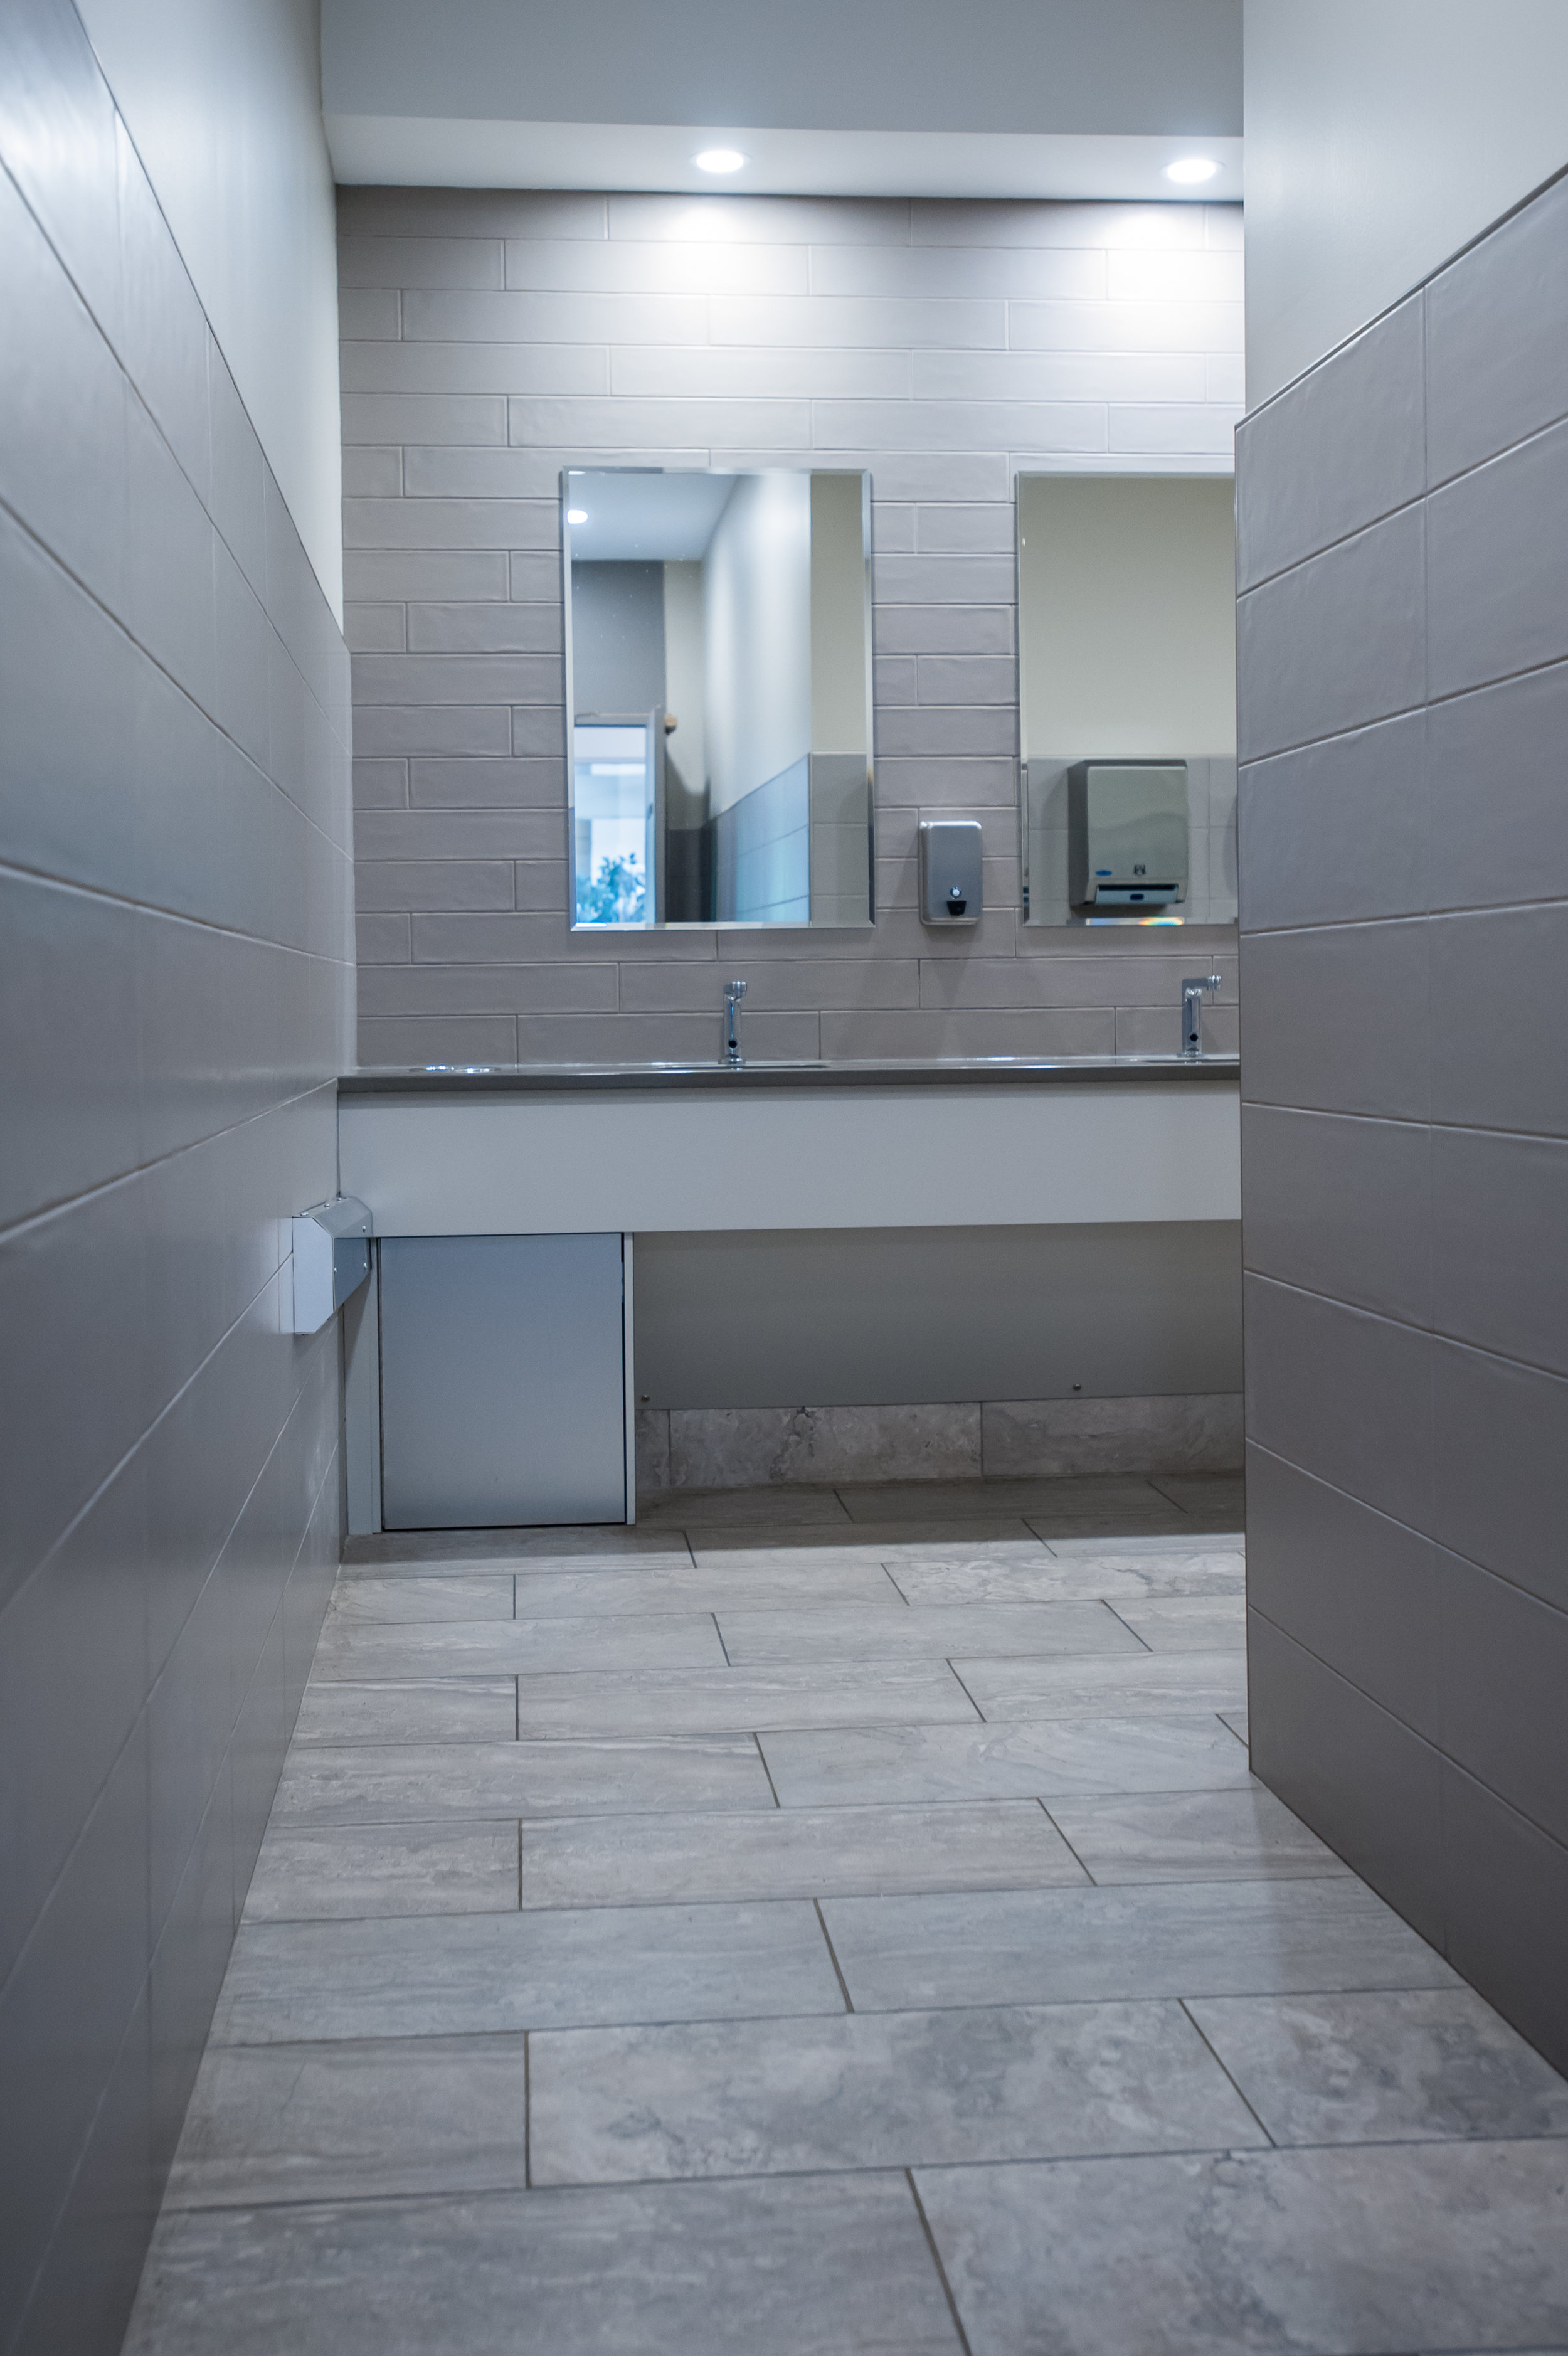 Commercial Wall & Floor Tile